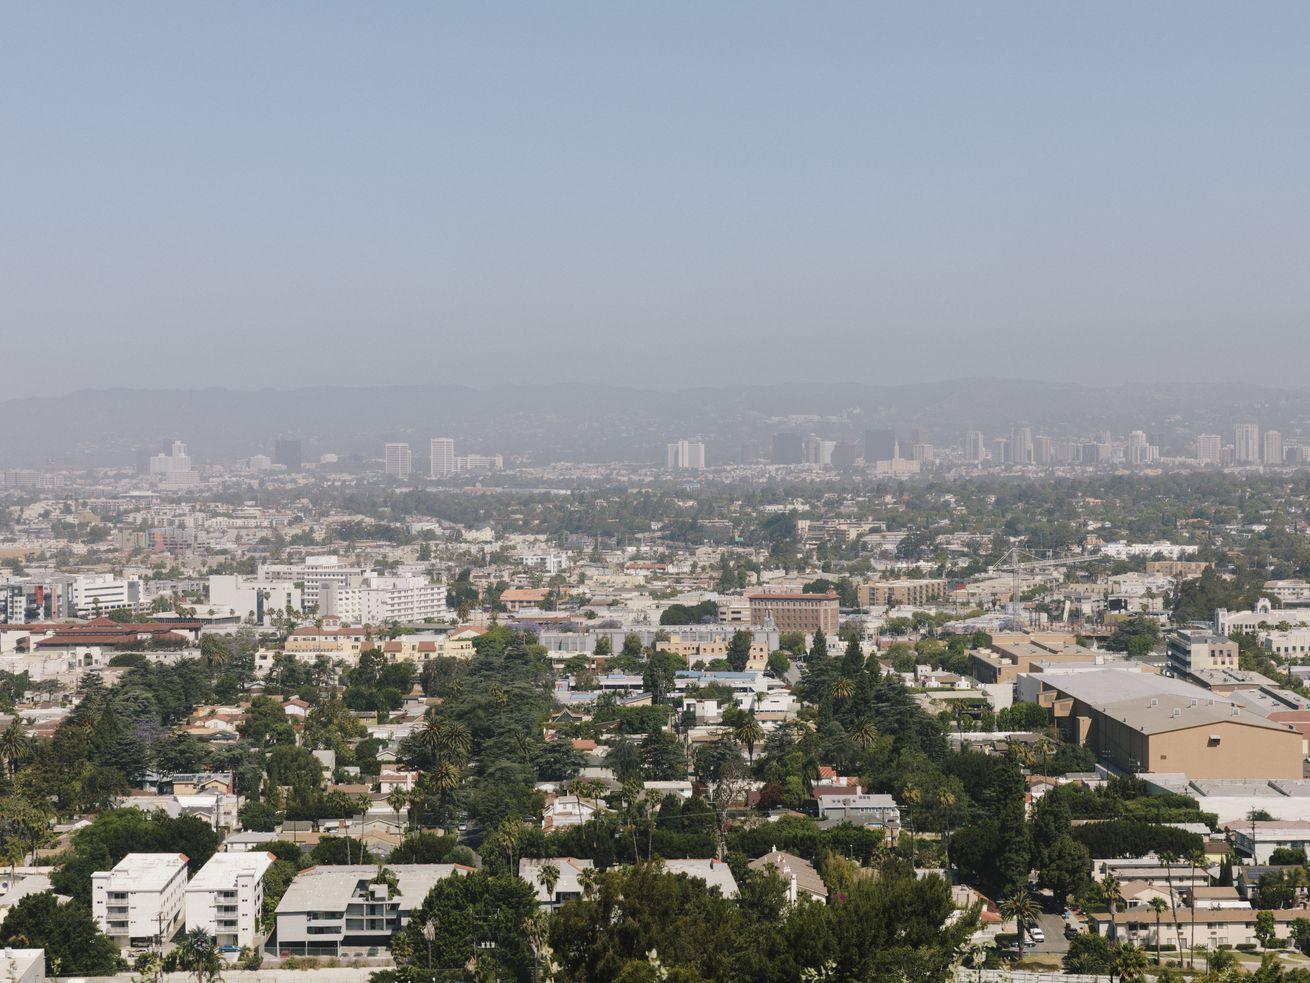 In most recent years, rent increases have been capped at 3 percent in the city of Los Angeles.